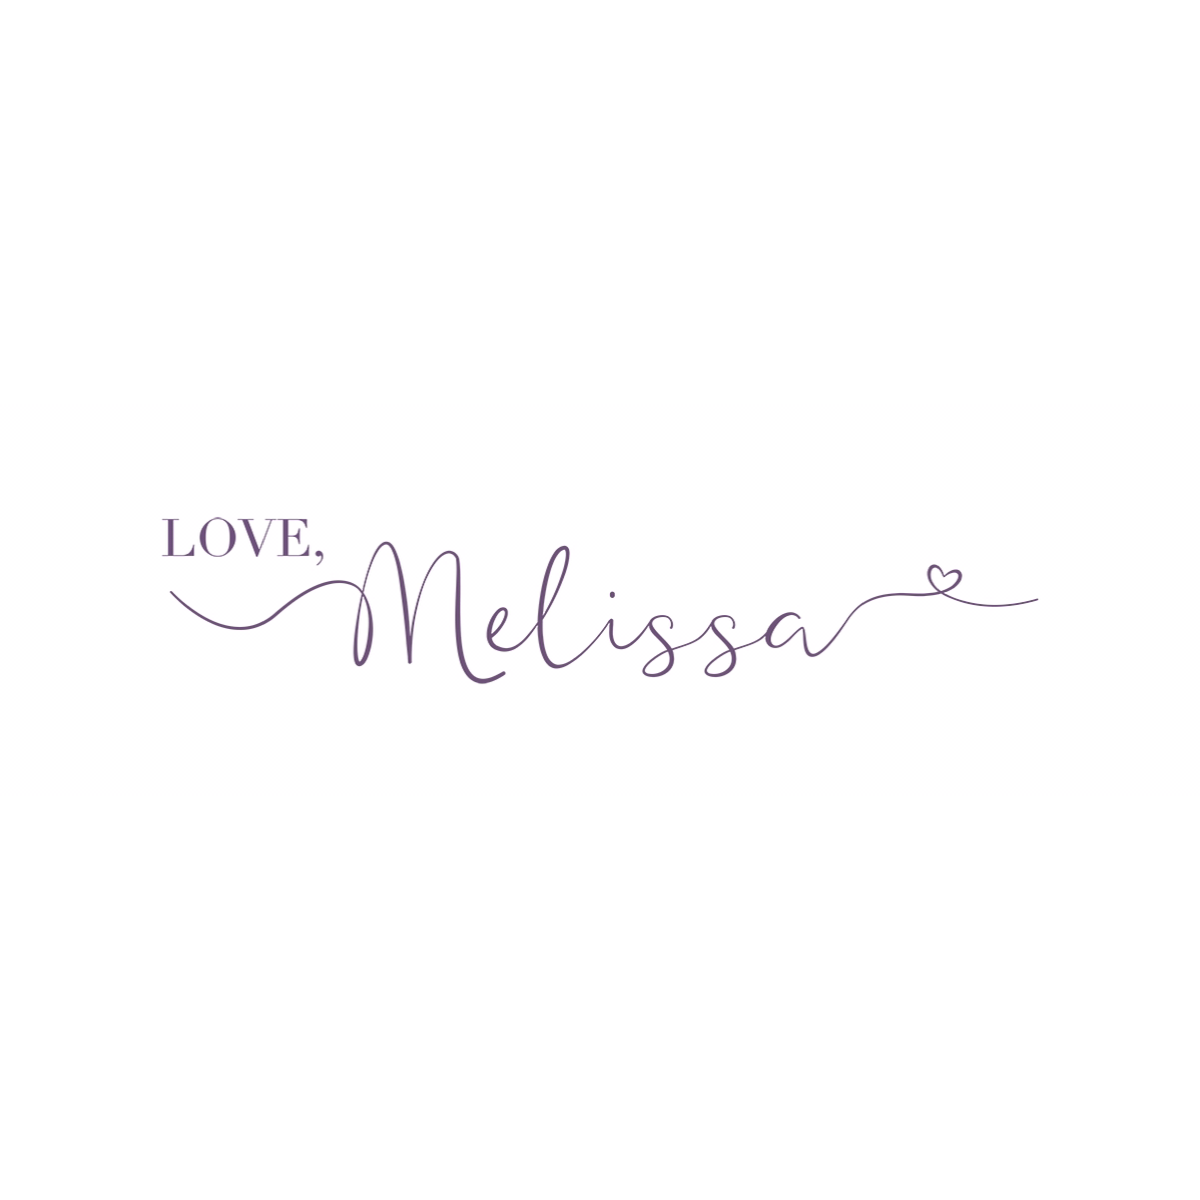 Where To Purchase Love Melissa